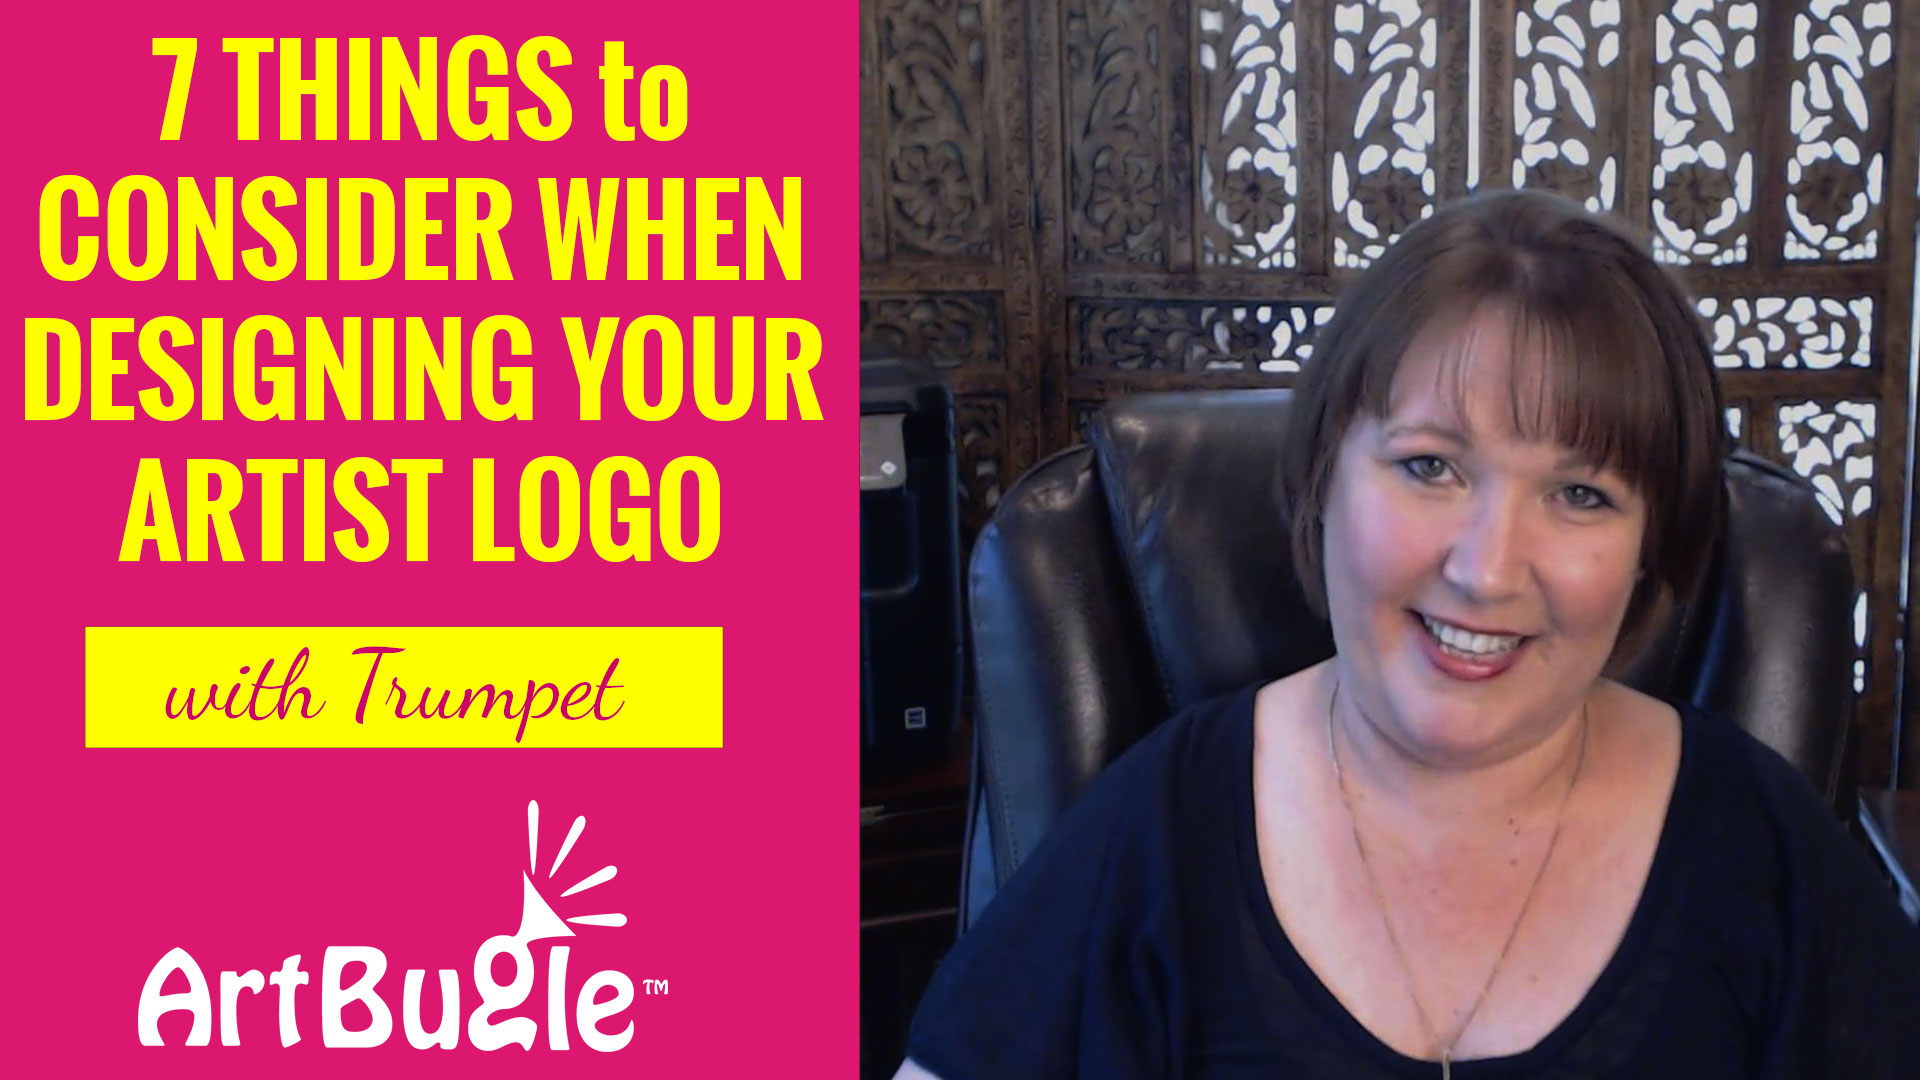 7 Things to Consider When Creating an Artist Logo